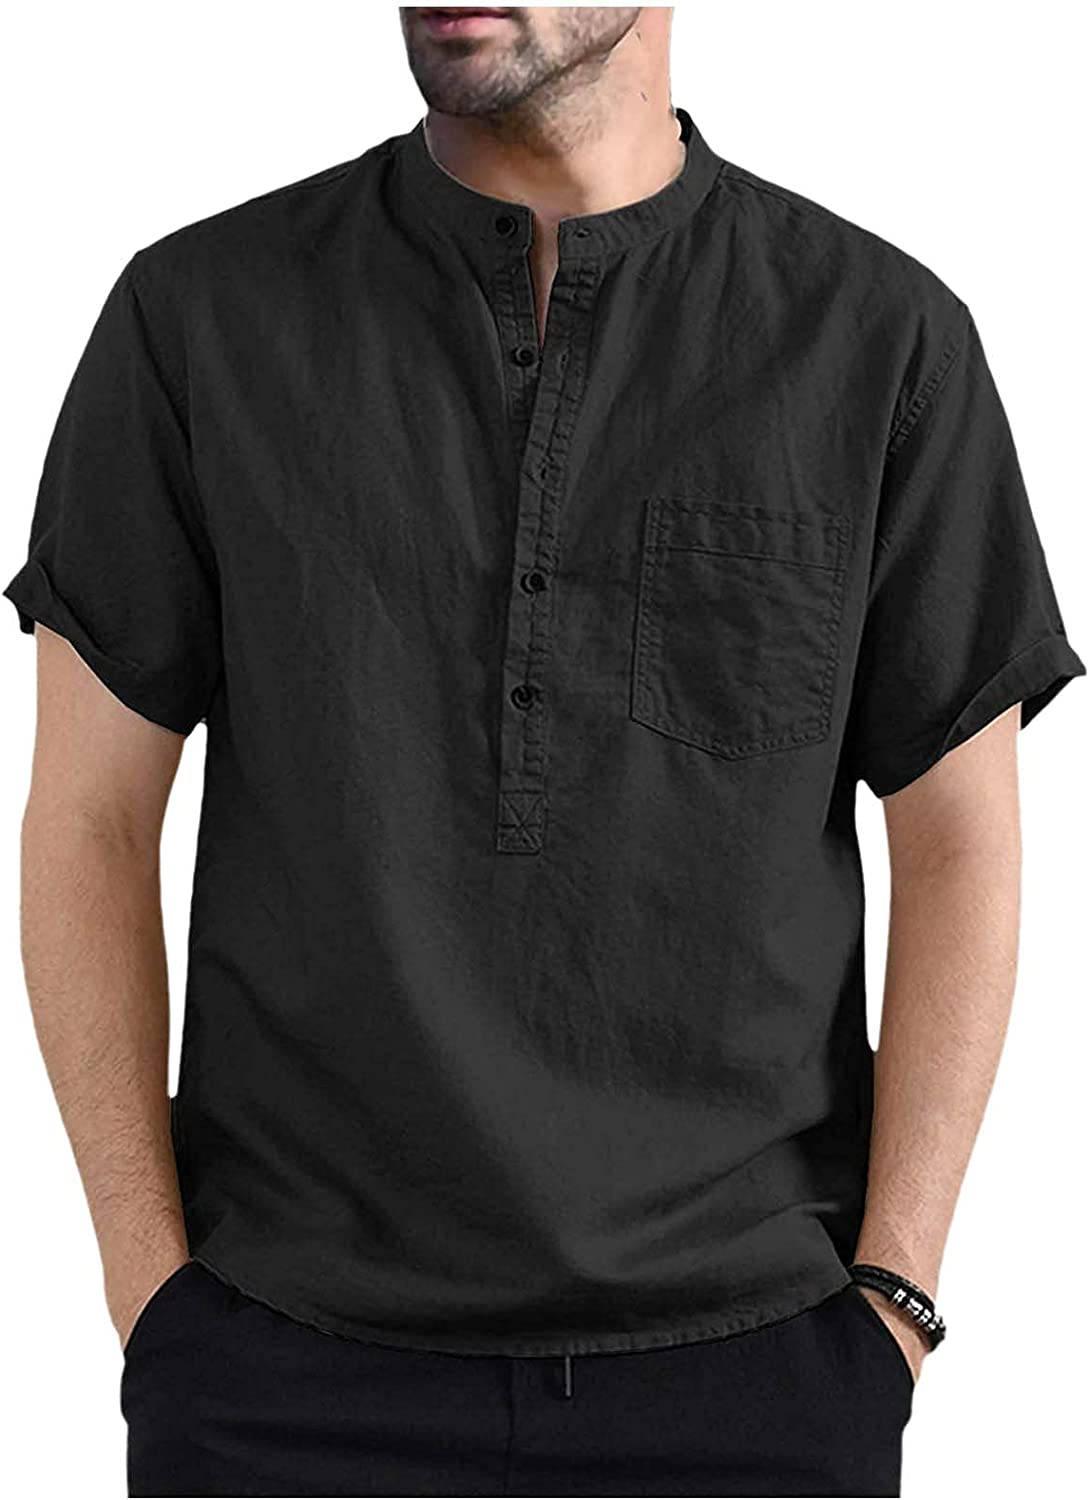 FUNEY Mens Fashion Short Sleeve T-Shirts Casual Front Placket Basic Solid Color Button-up V Neck Henley Shirt with Pockets